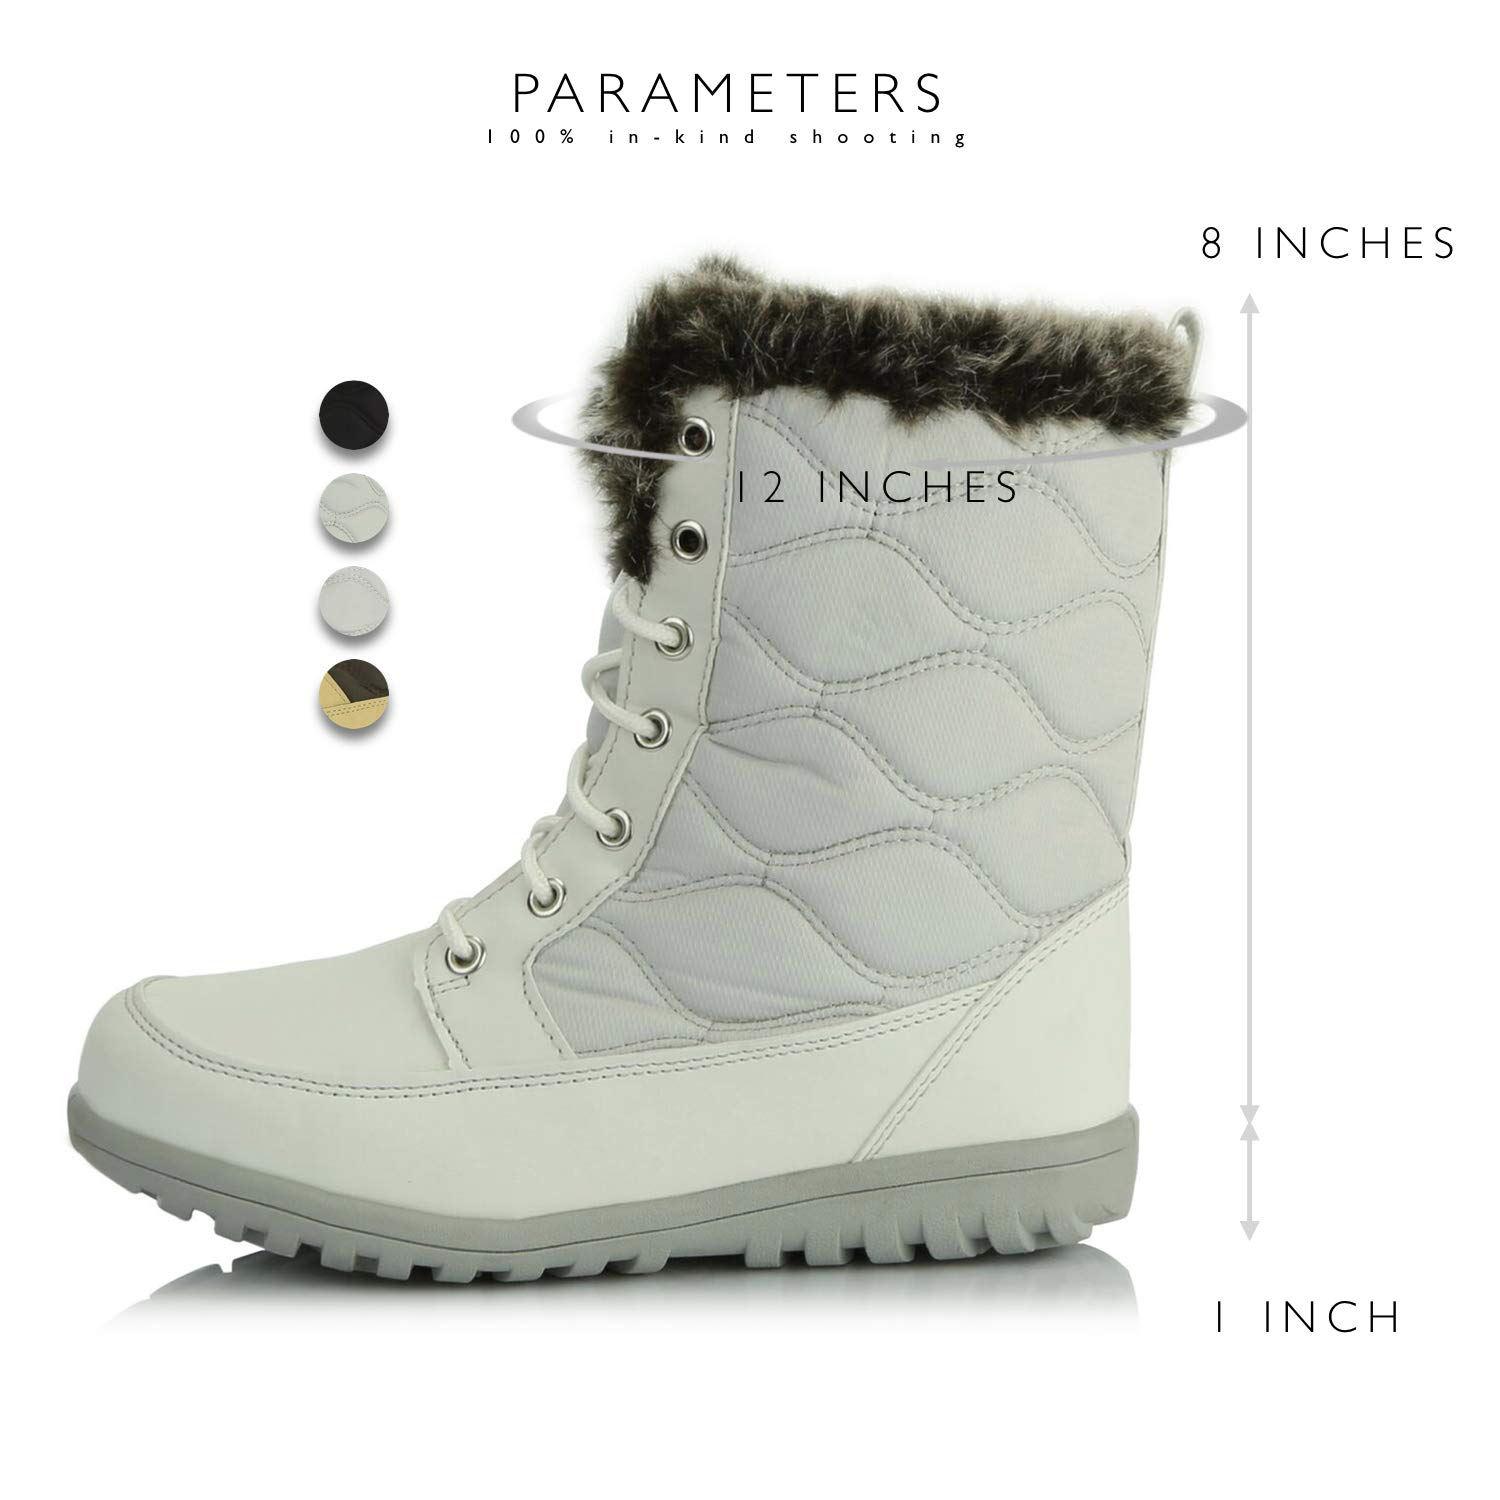 new style c486a bce12 ... DailyShoes Women s Comfortable Round Toe Flat Ankle High Eskimo  Shearling Winter Fur Snow Boots B014QH9CKQ Cold ...